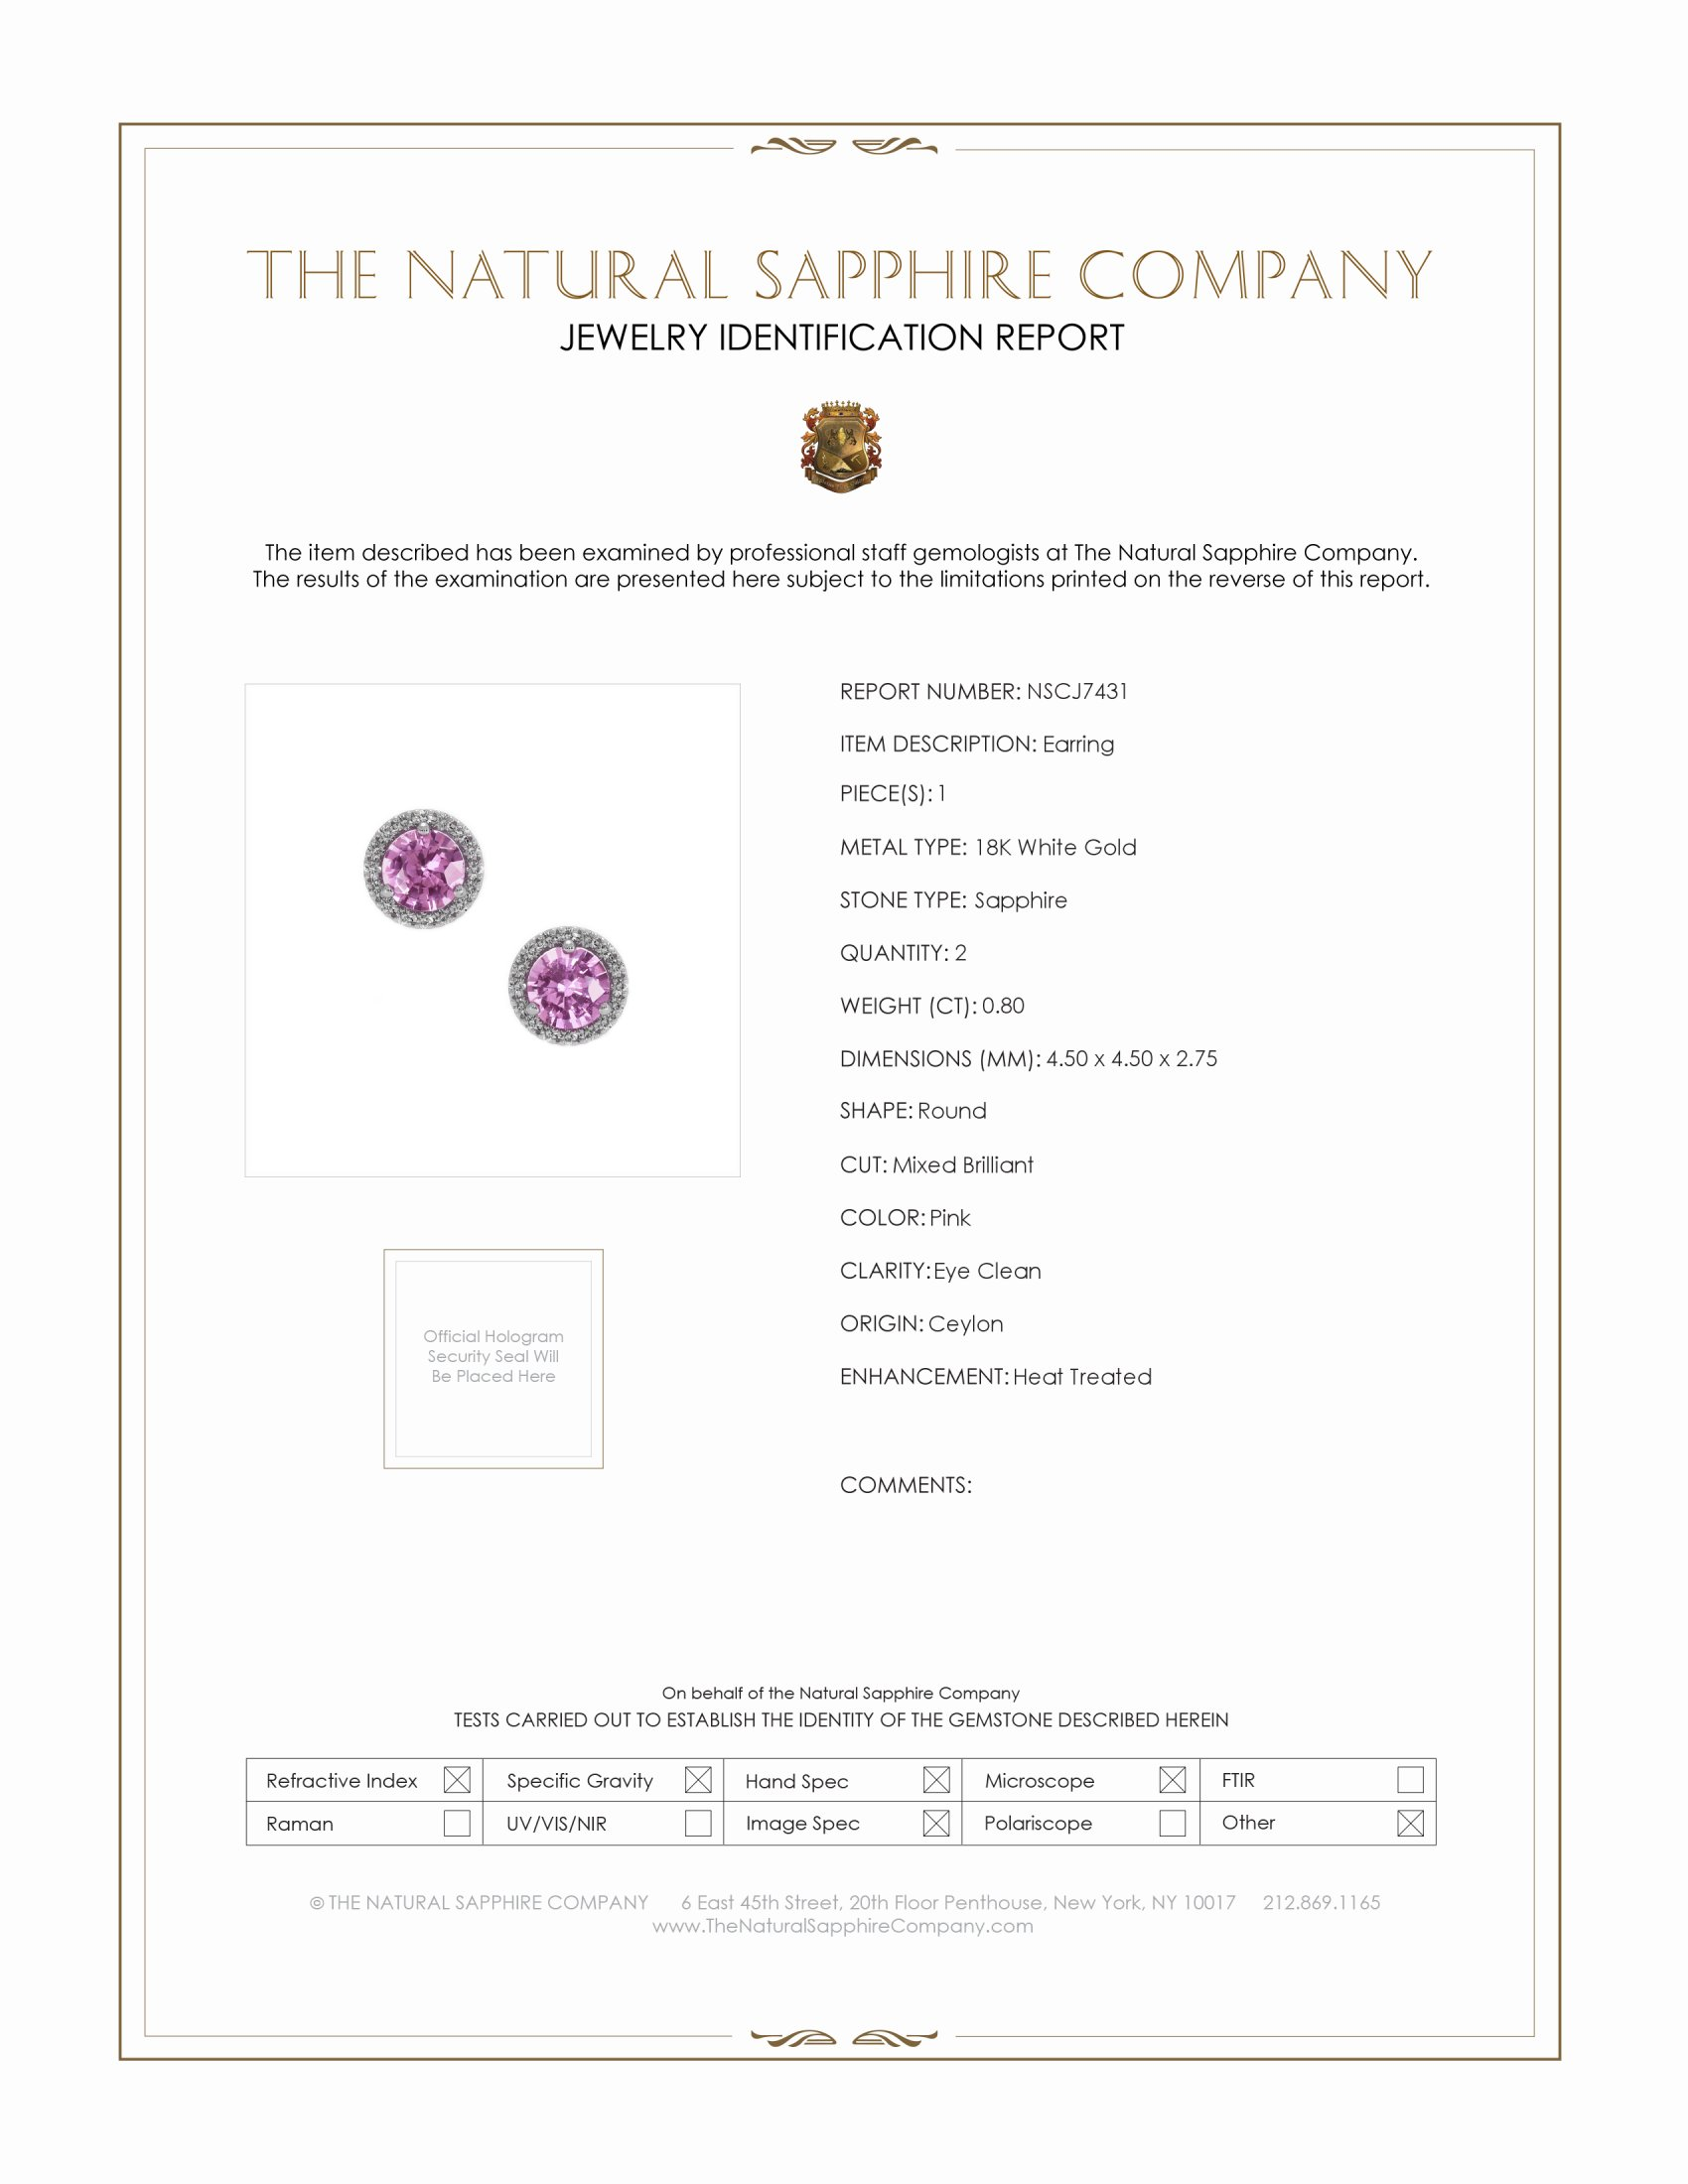 0.95ct Pink Sapphire Earring Certification